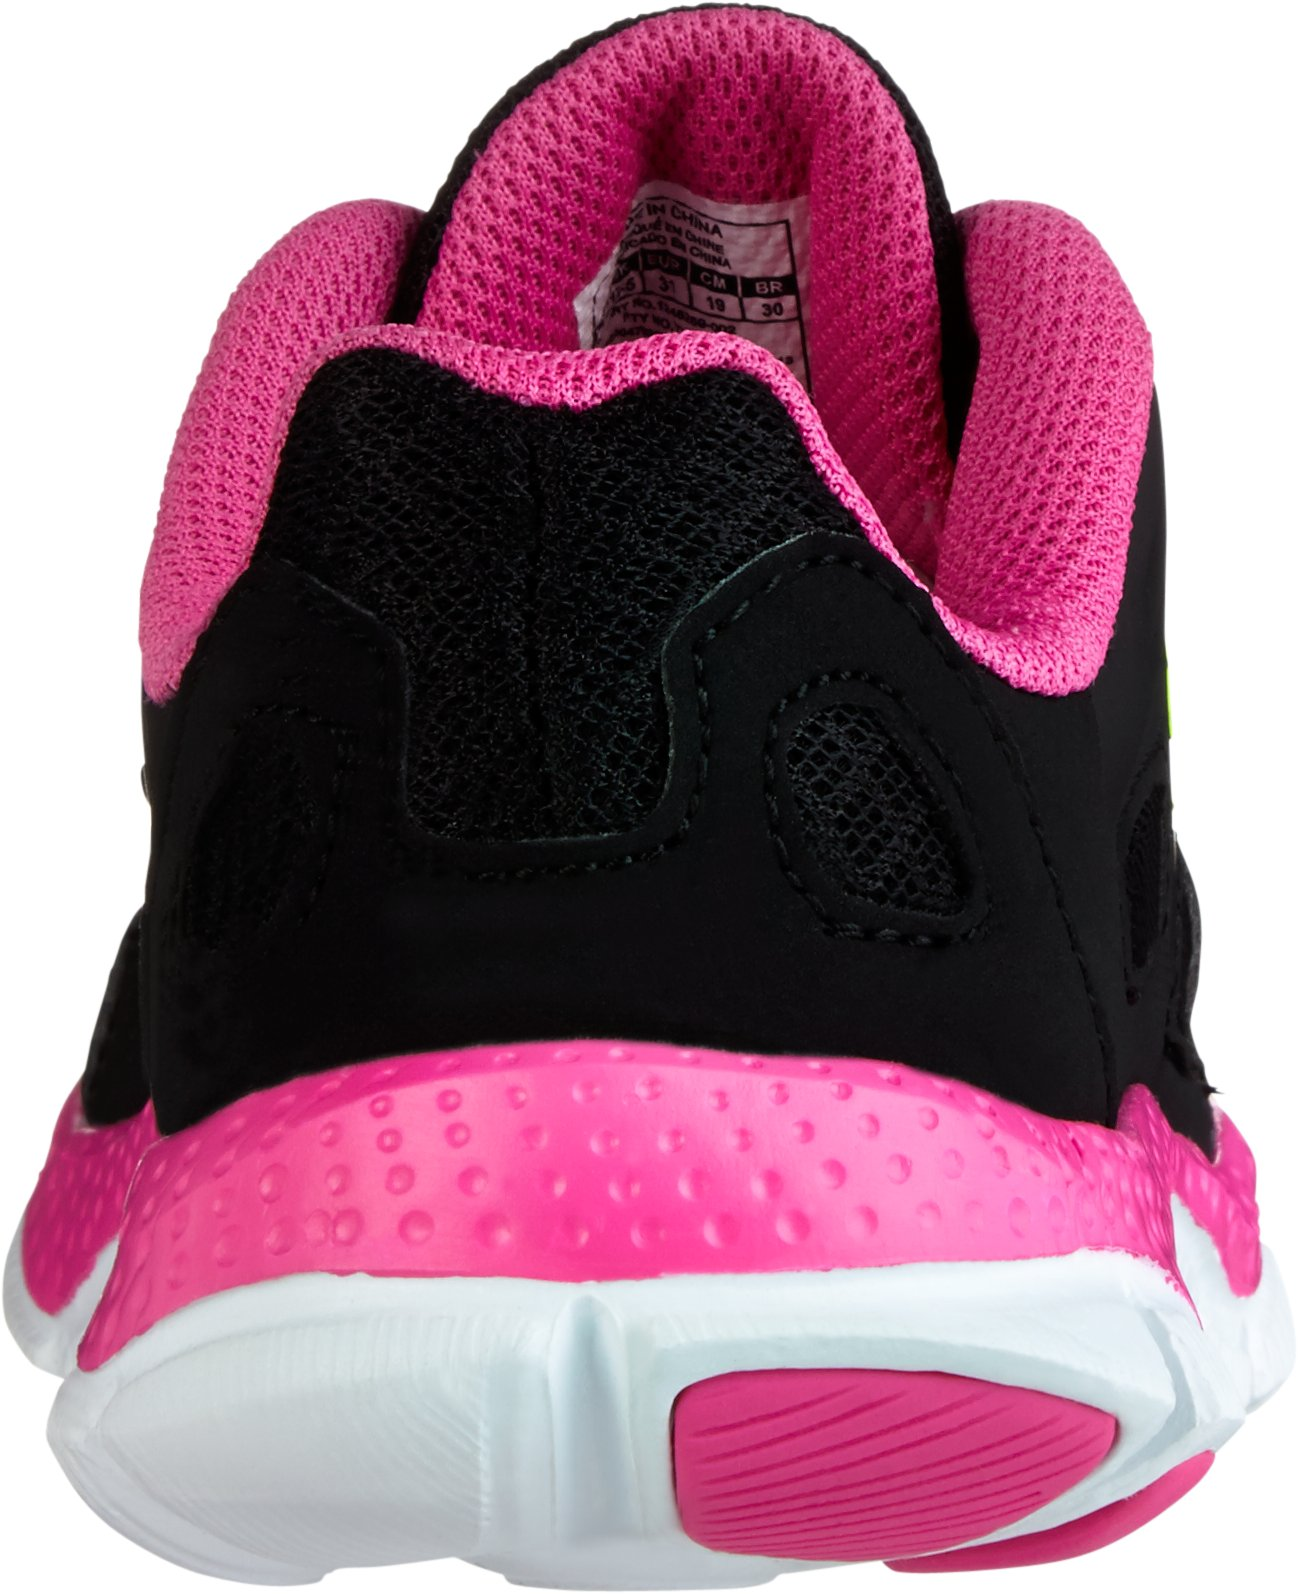 Girls' Pre-School UA Engage Running Shoes, Black